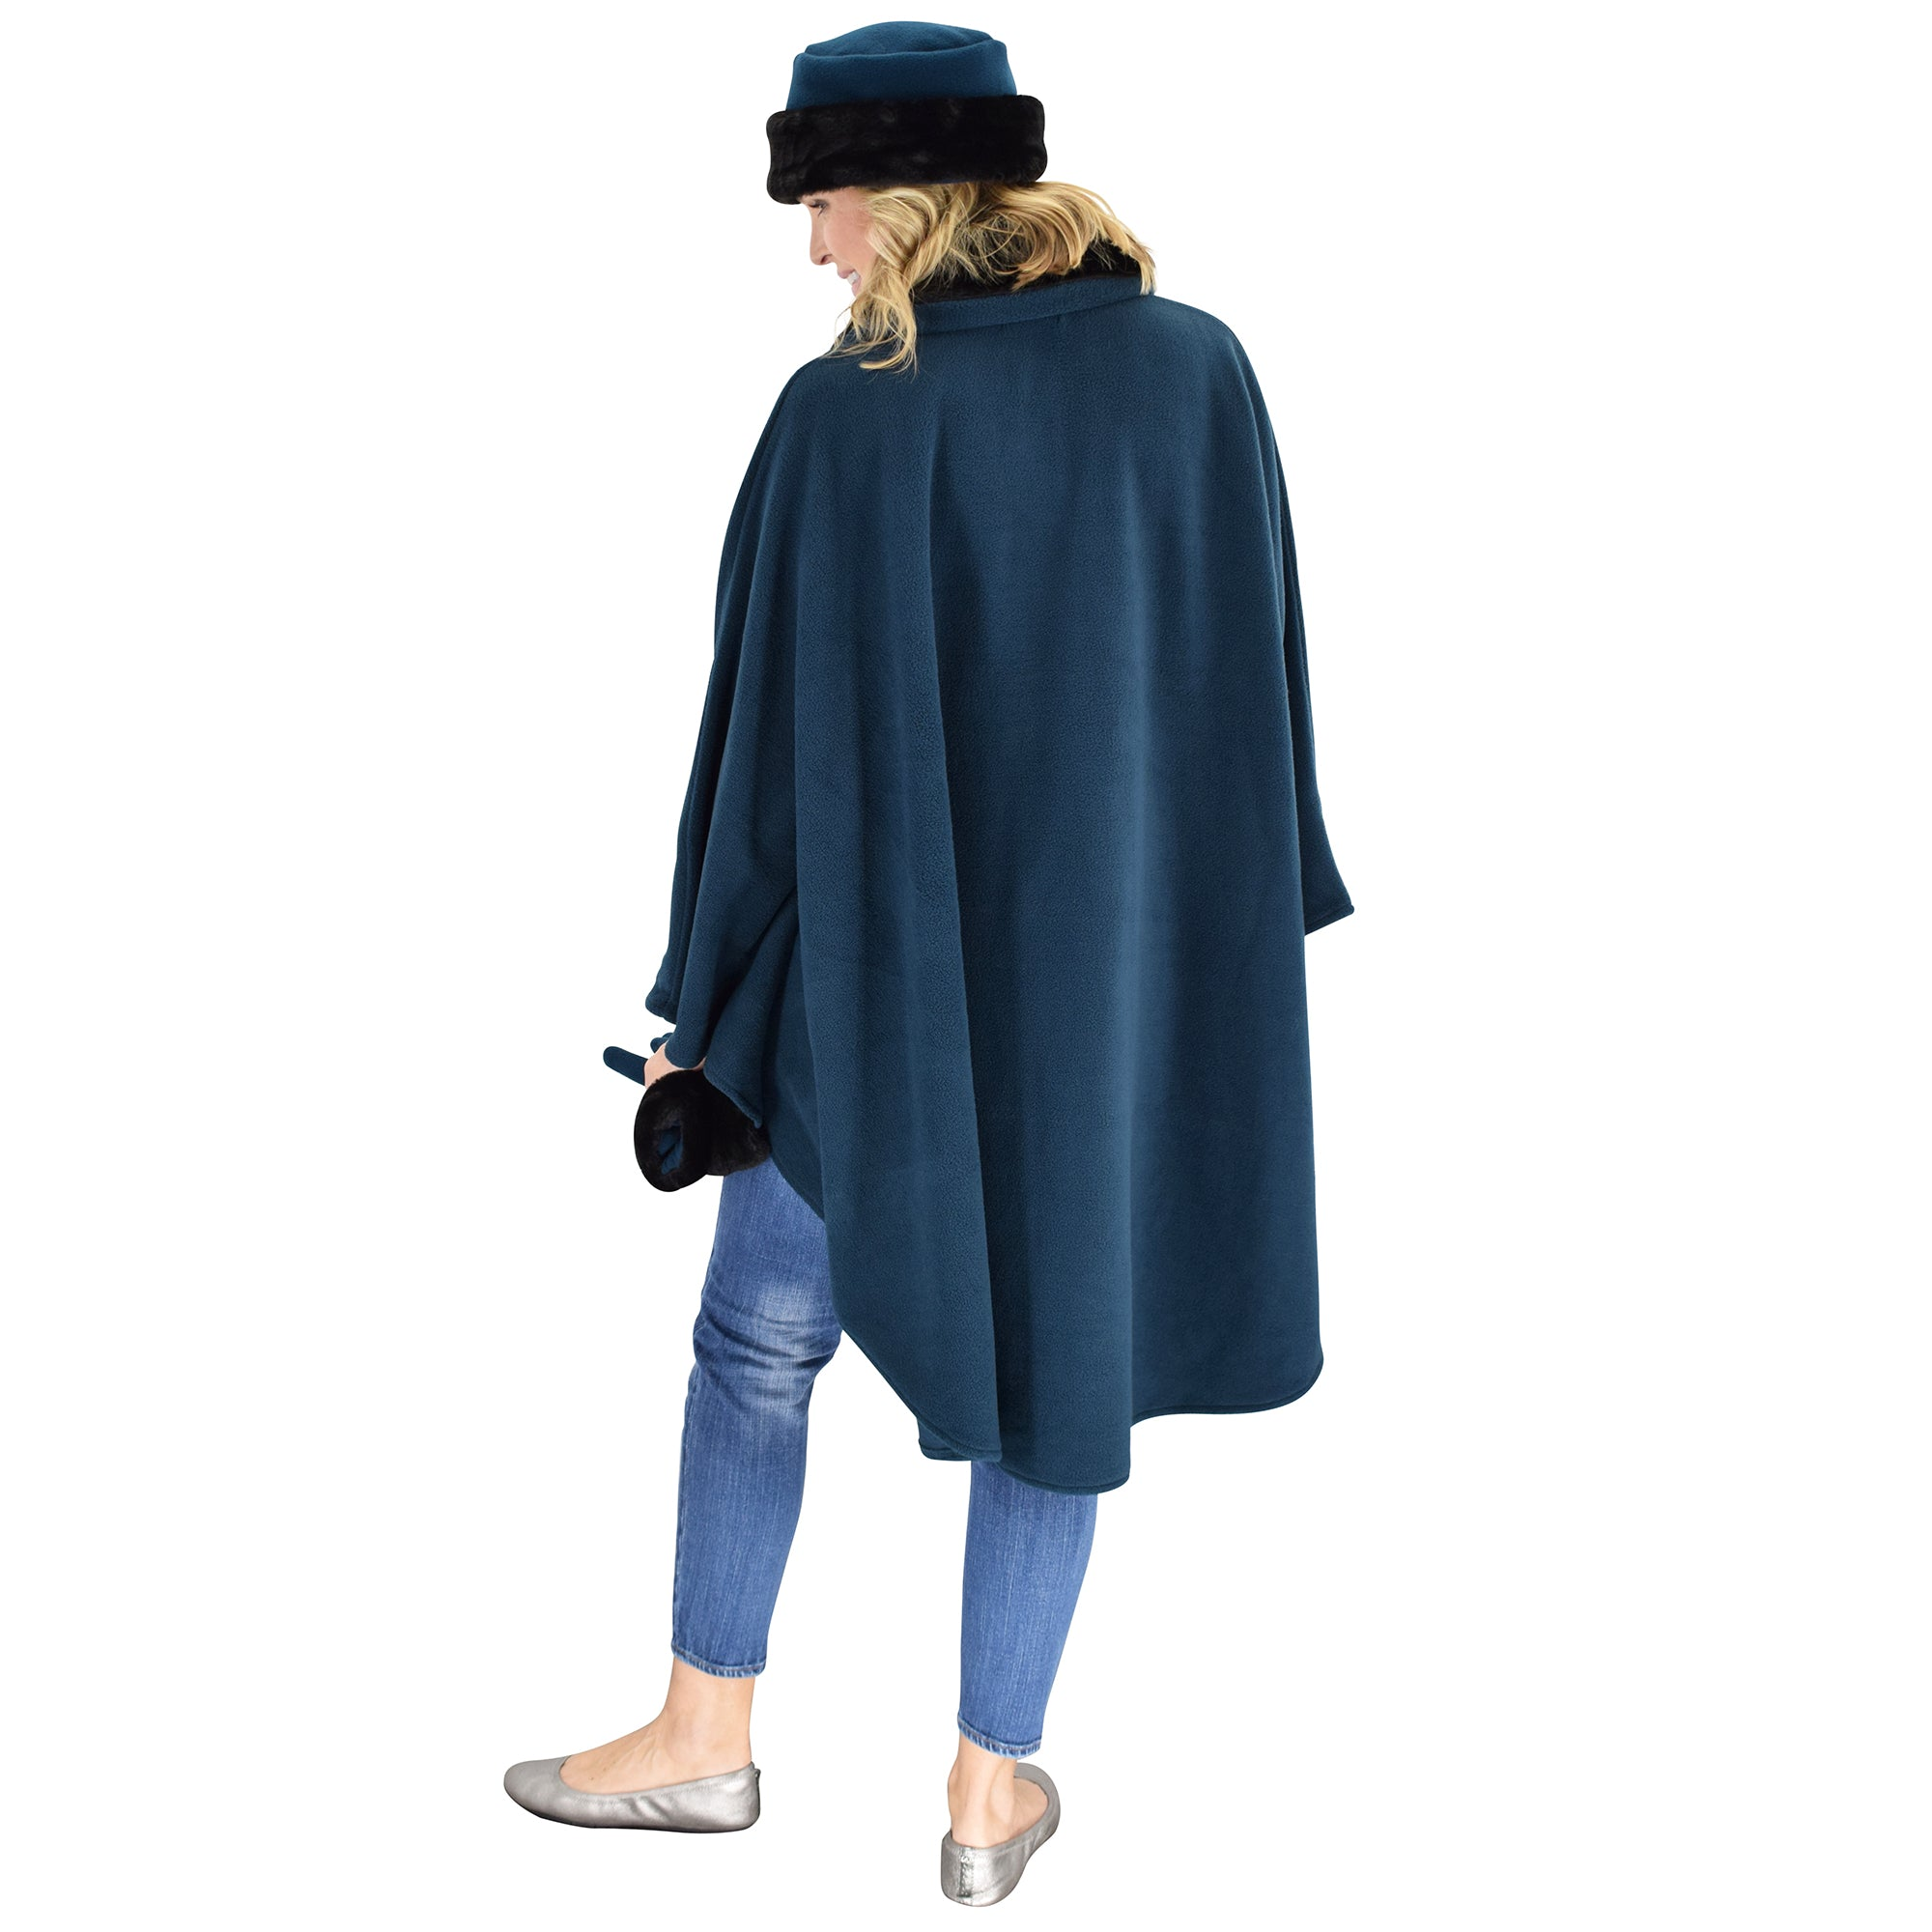 Le Moda Women's Black Fur Collar Polar Fleece Wrap with Matching Gloves and Hat-One Size Fits All at Linda Anderson.  color_teal